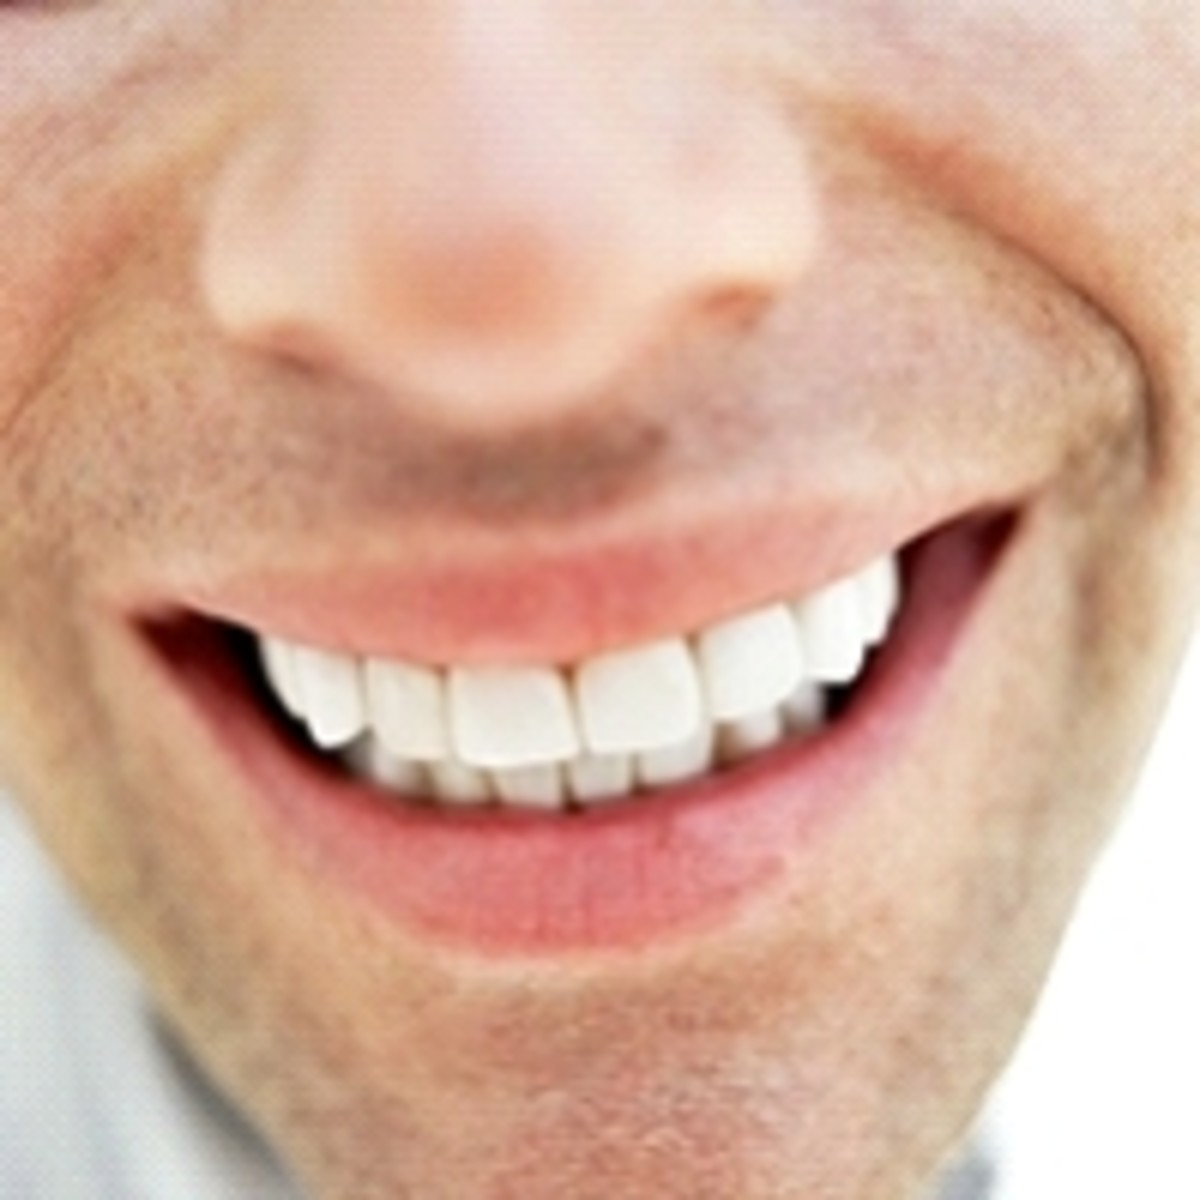 Follow the six tips to healthy gums and break the link between gum disease and heart disease